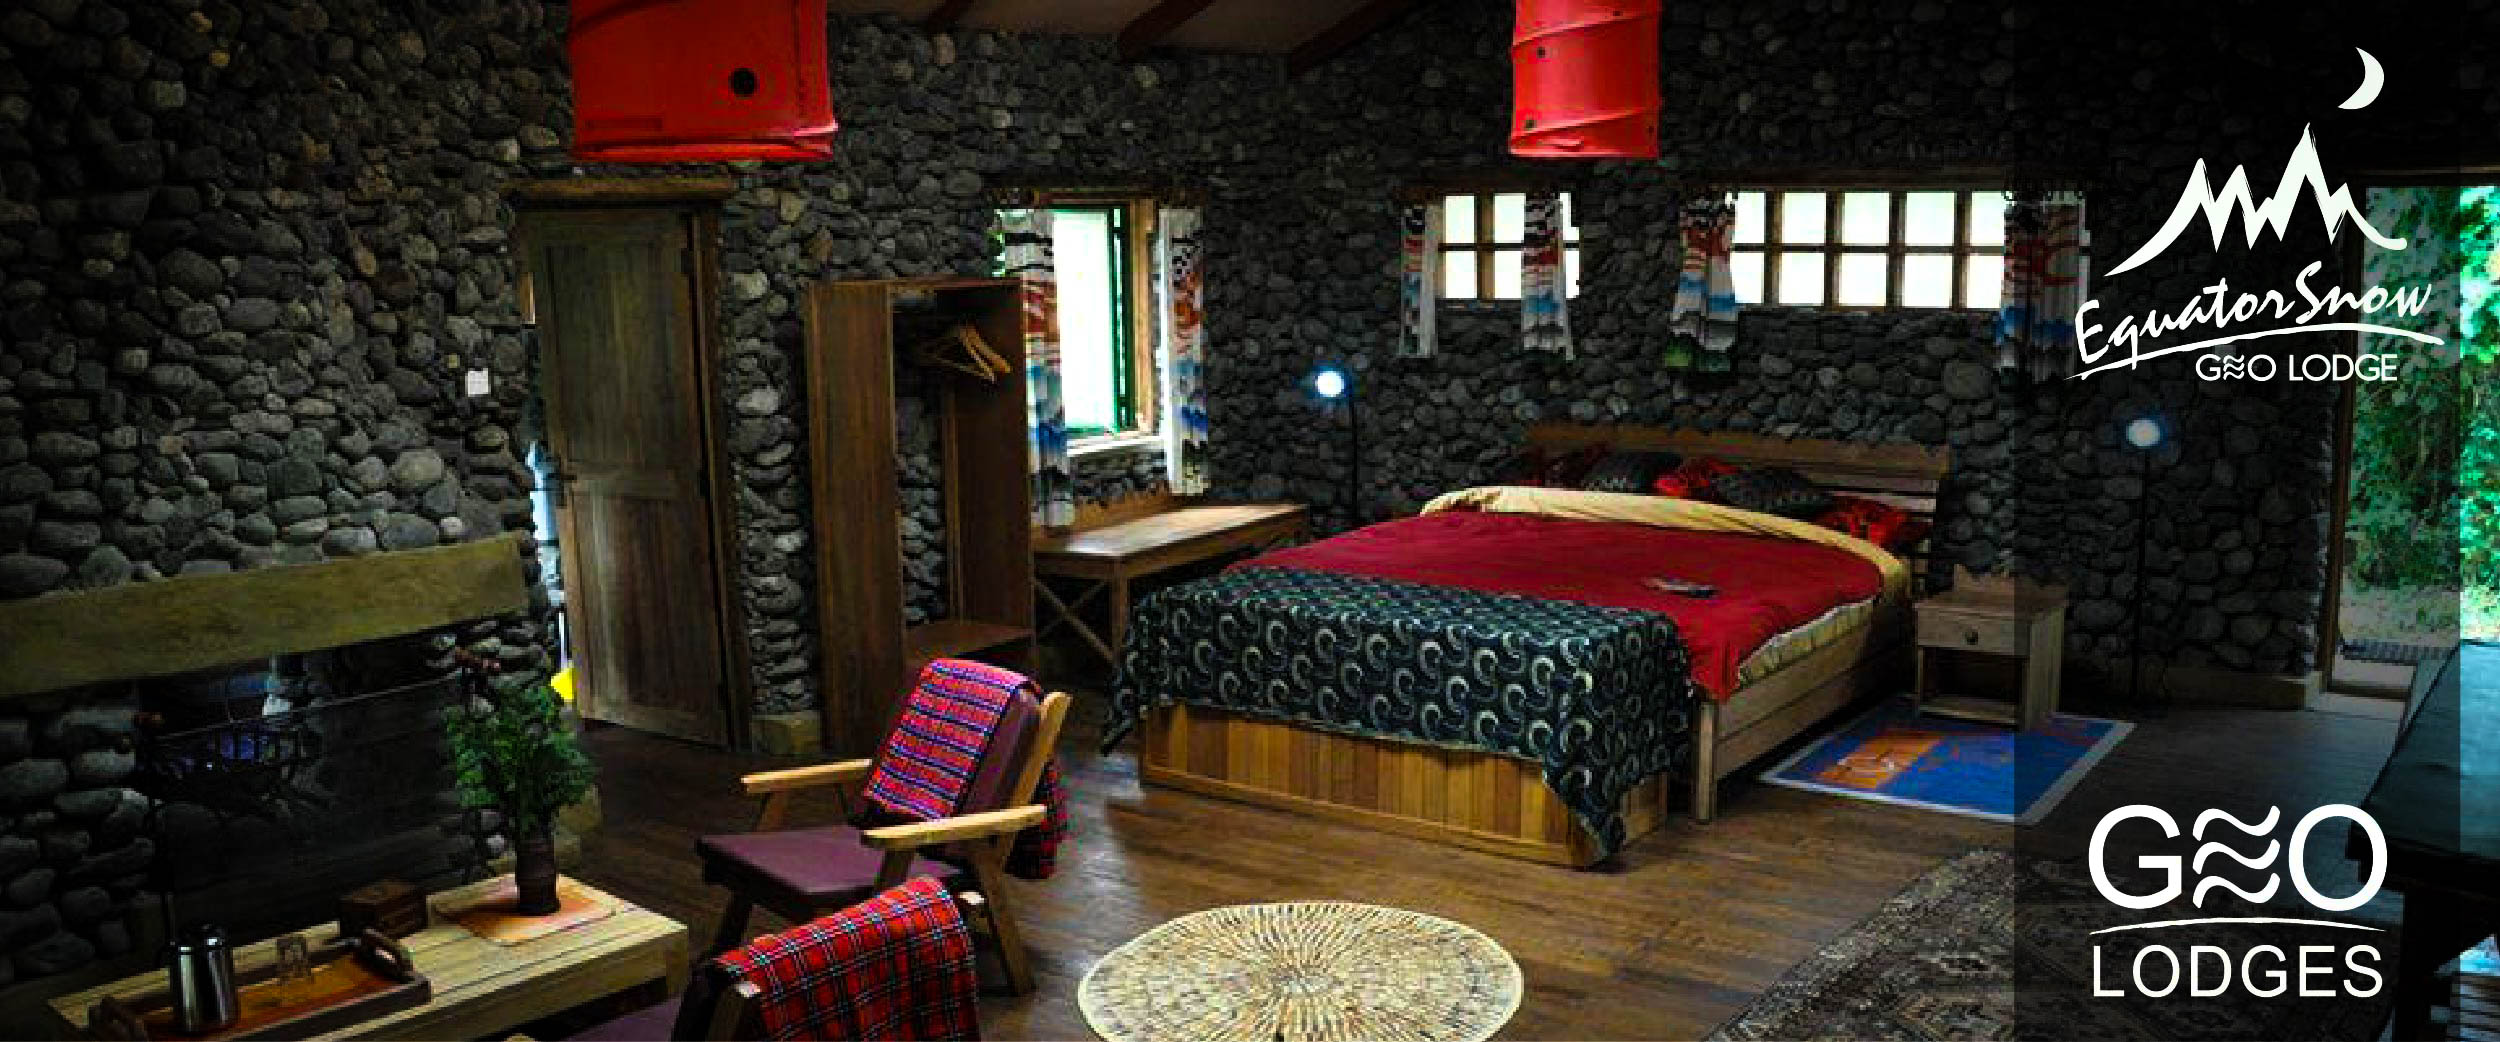 The Equator Snow Lodge is your gateway to Uganda's highest mountain range